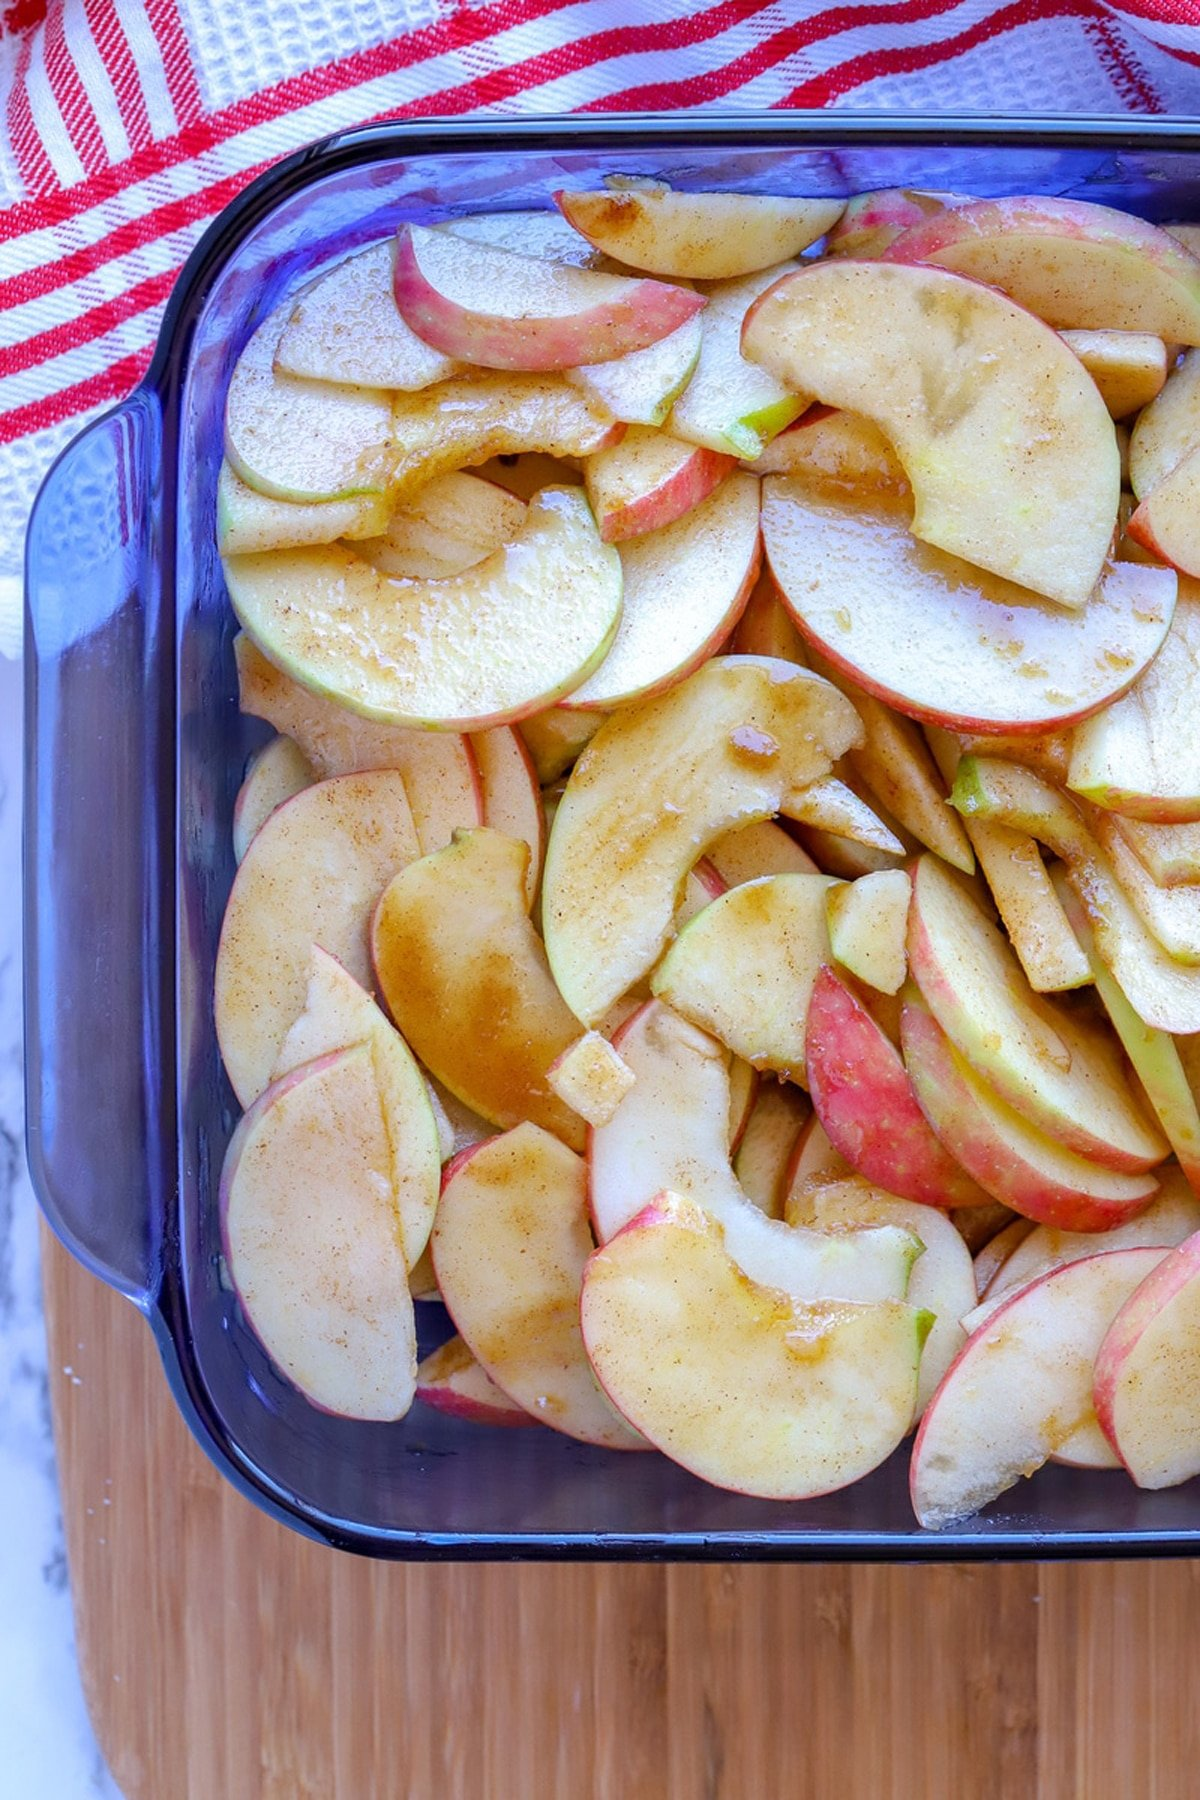 Blue Pyrex dish containing cinnamon apples, red and white napkin on table.